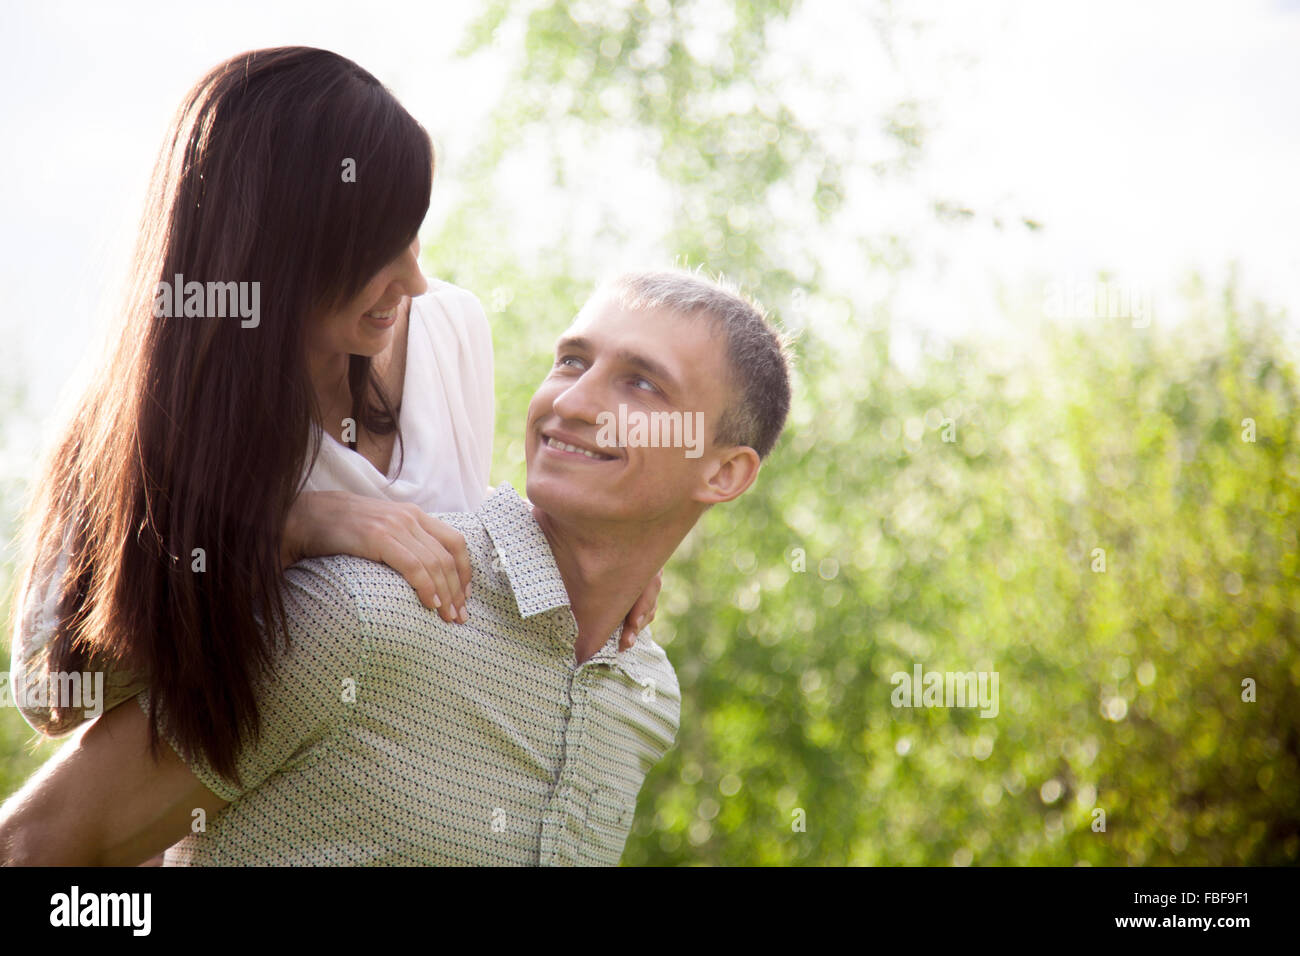 Couple in love on a date, young man giving his beautiful girlfriend piggyback ride, happy smiling, having fun together, - Stock Image